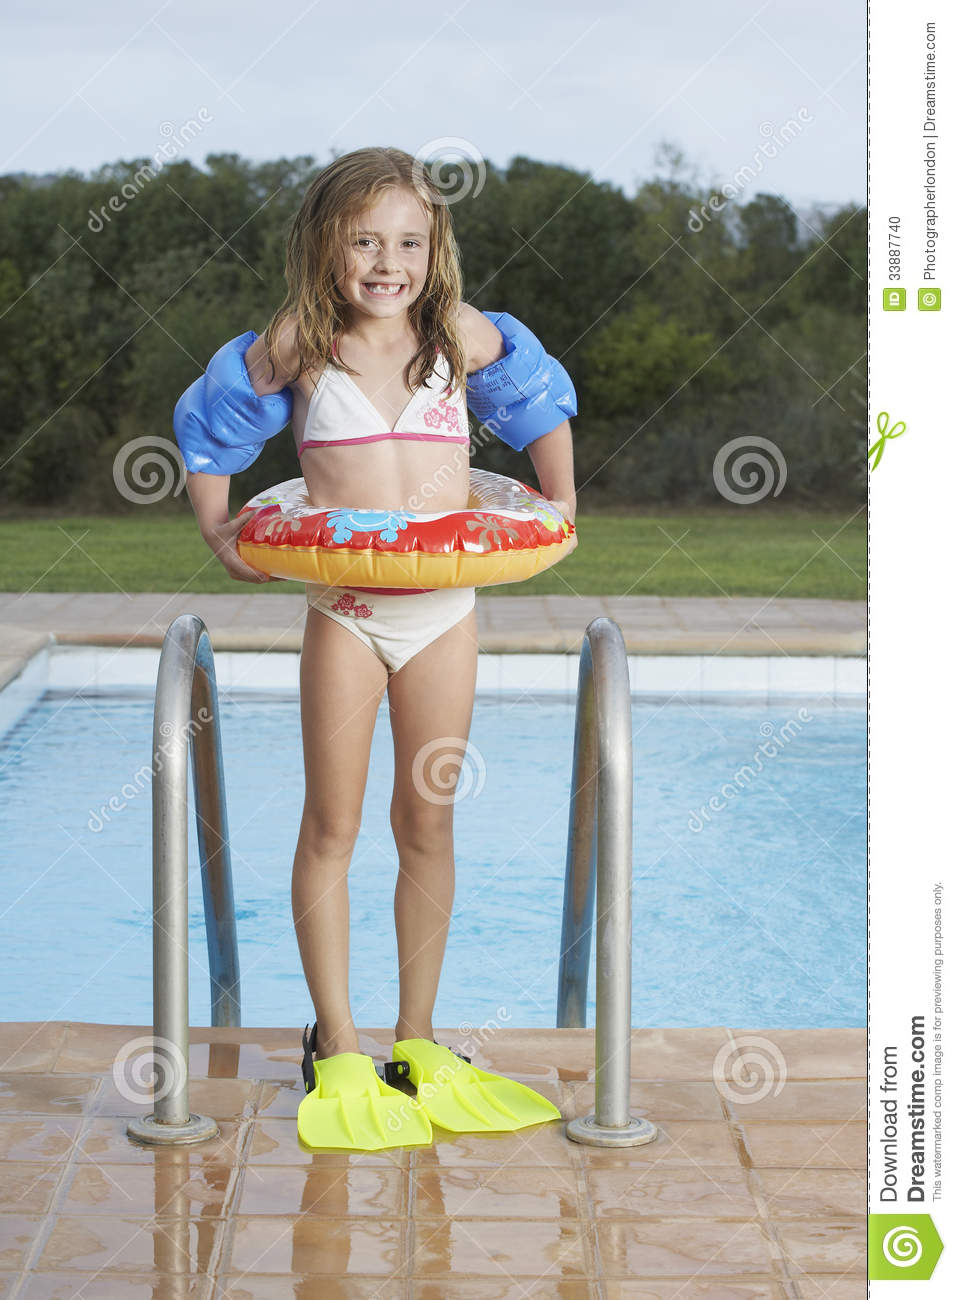 smiling girl with inflatable ring and fins against pool